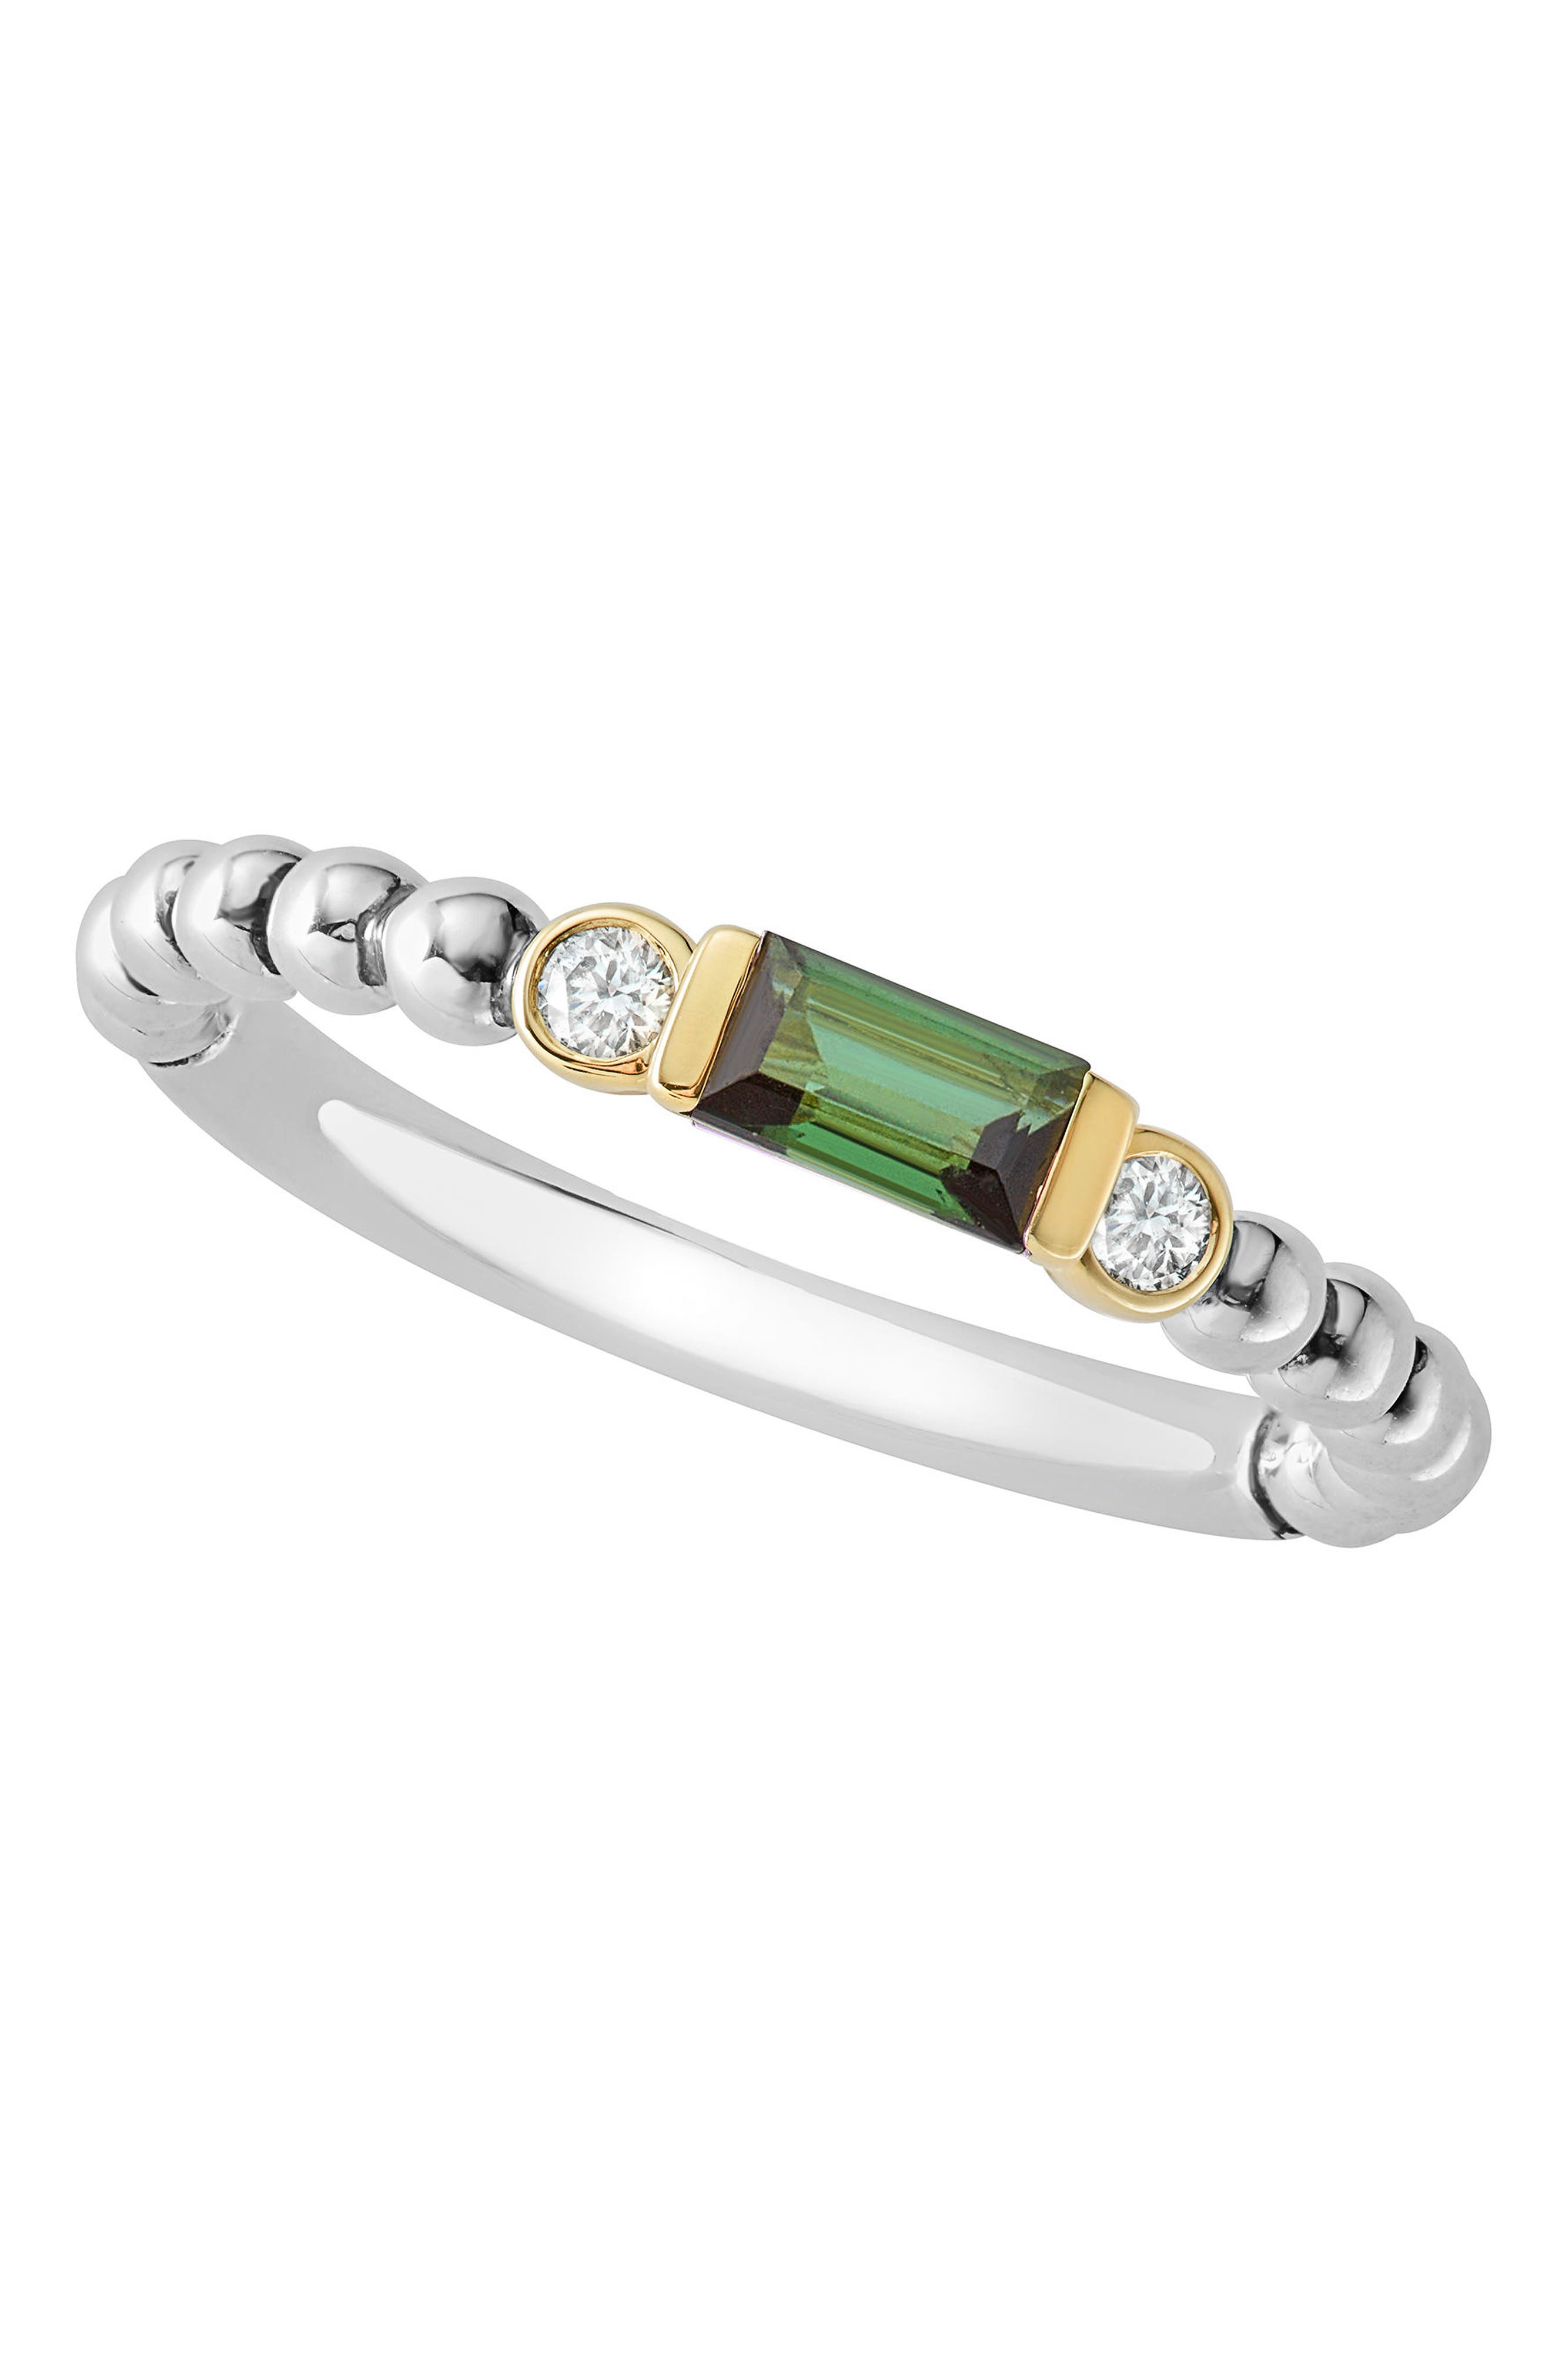 Gemstone Baguette and Diamond Beaded Band Ring,                             Alternate thumbnail 4, color,                             SILVER/ 18K GOLD/ TOURMALINE